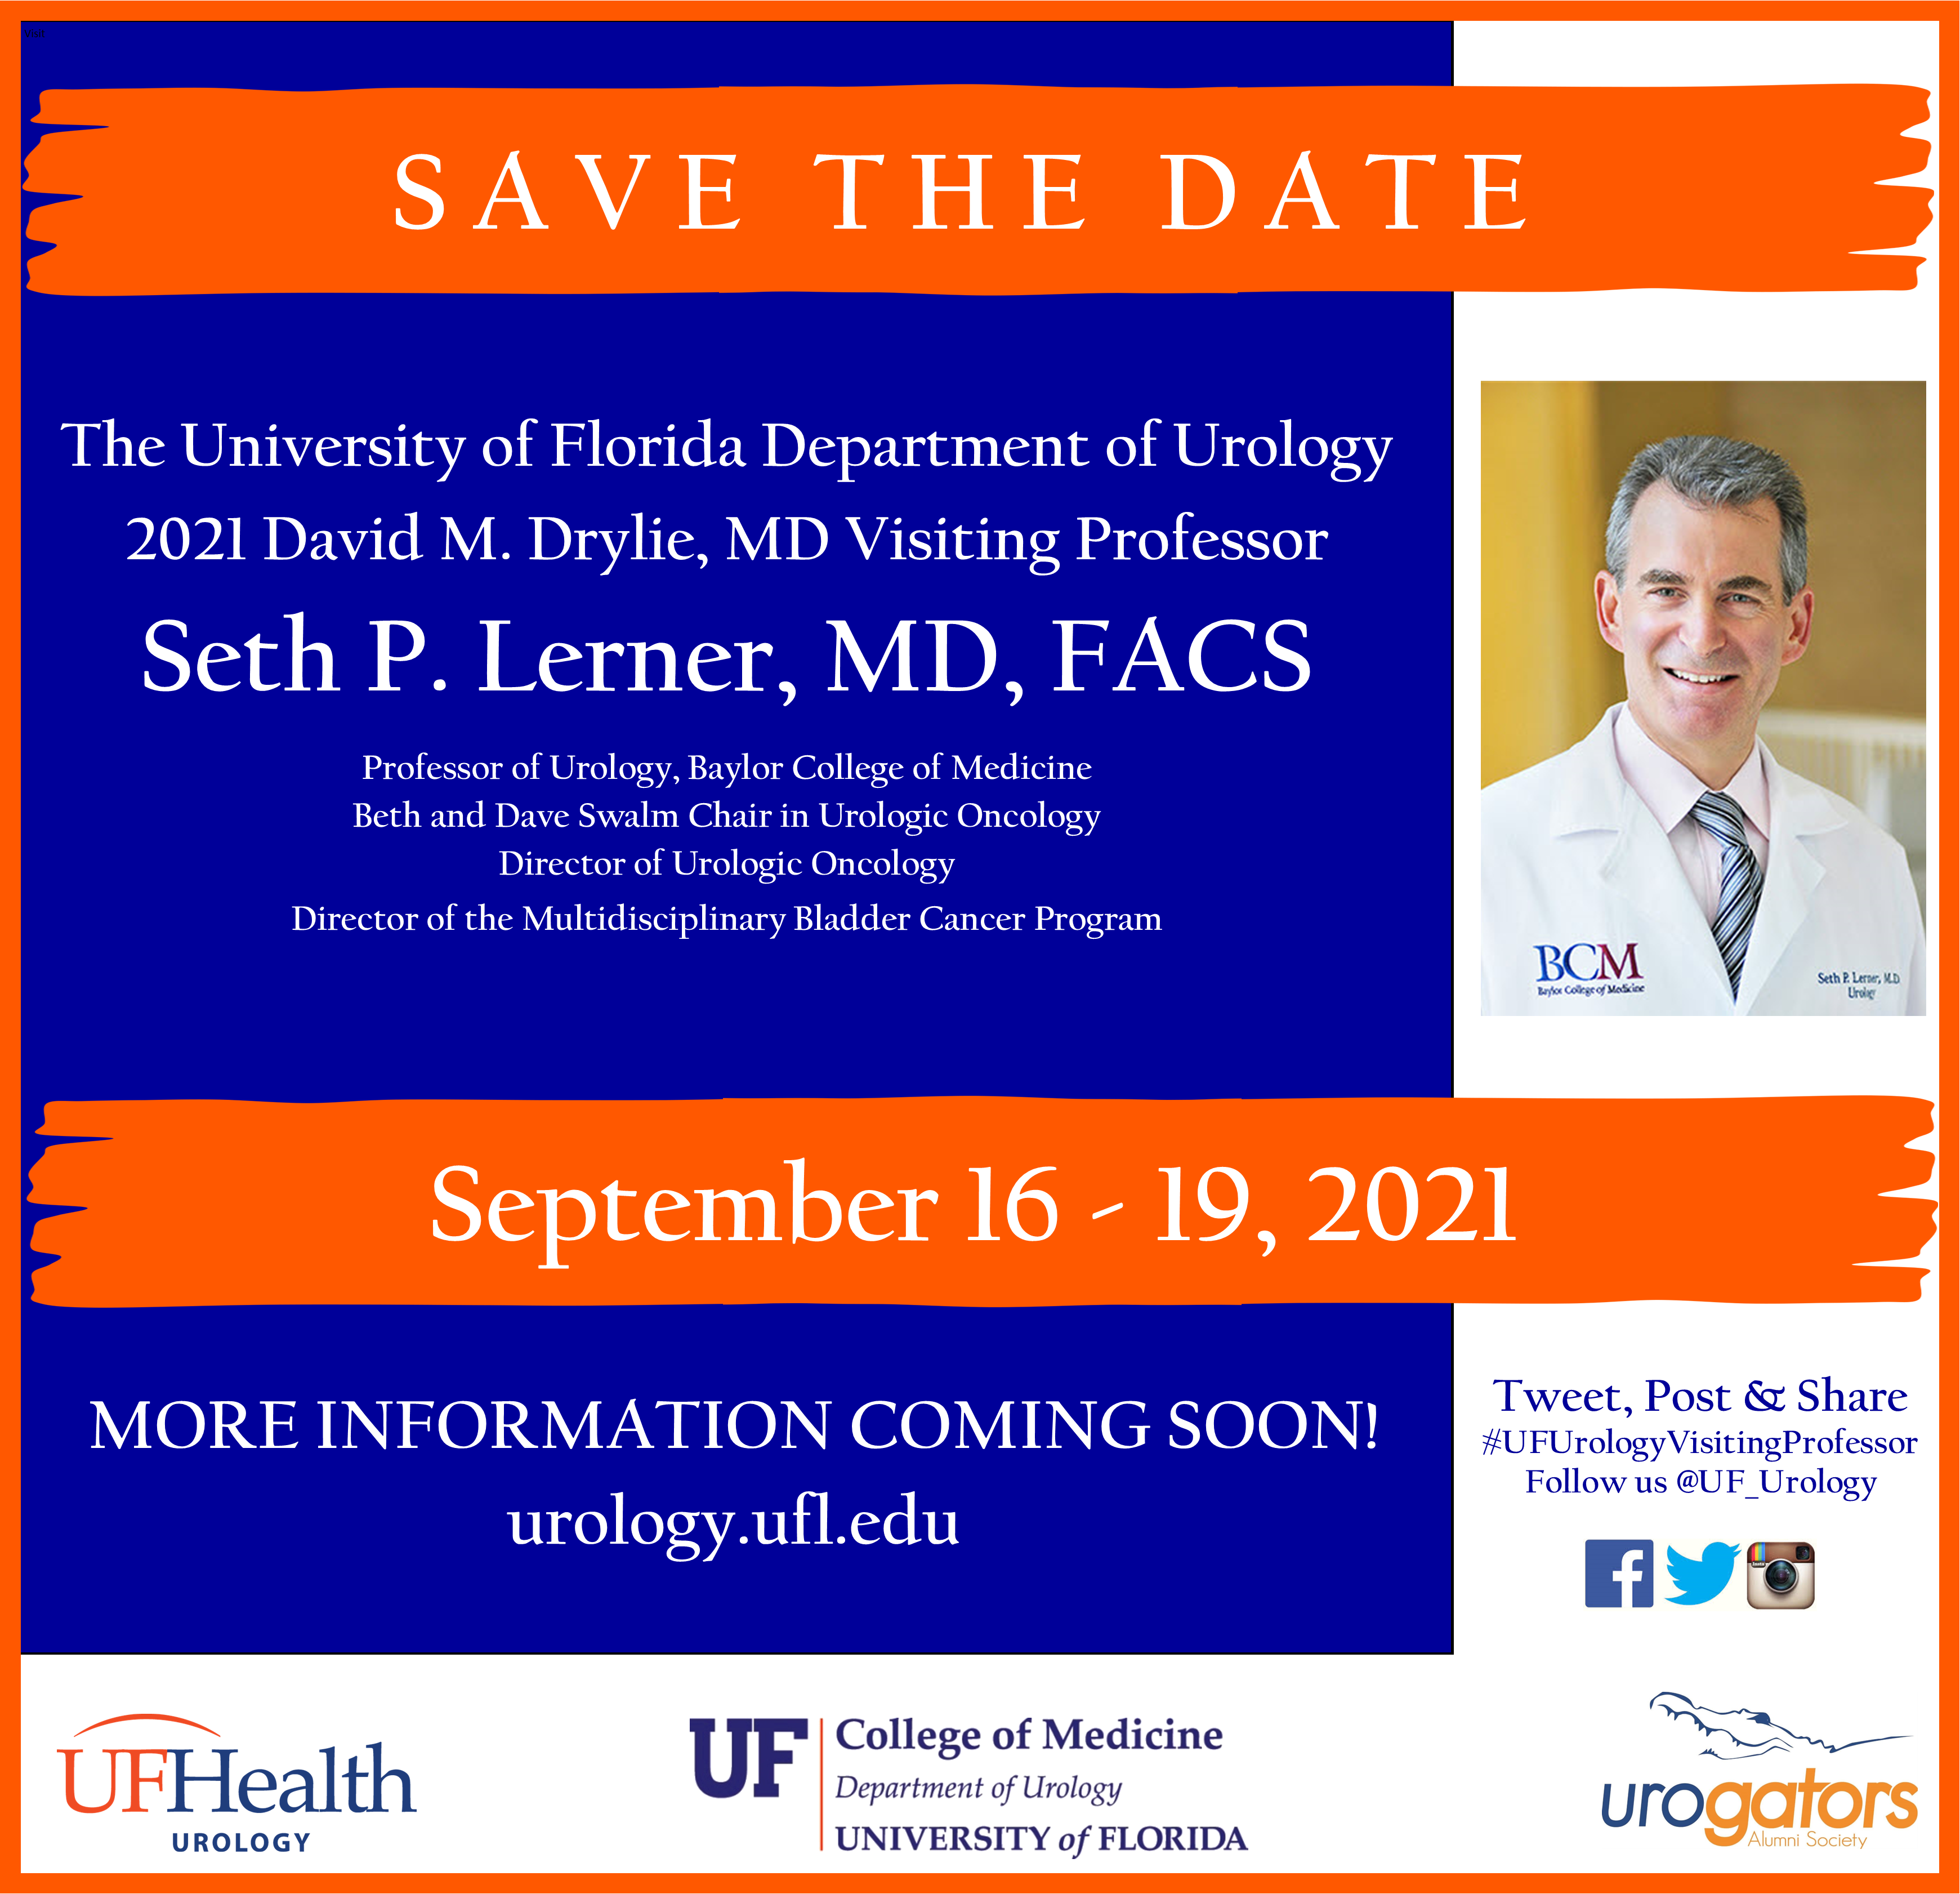 a brochure card with a white background and orange and blue accent colors.  SAVE THE DATE is at the top.  below reads The University of Florida Department of Urology 2021 David M. Drylie, MD Visiting Professor  Seth P. Lerner, MD, FACS Professor of Urology, Baylor College of Medicine Beth and Dave Swalm Chair in Urologic Oncology Director of Urologic Oncology Director of the Multidisciplinary Bladder Cancer Program.   next is the date September 16 - 19, 2021.  below the date is MORE INFORMATION COMING SOON! urology.ufl.edu.  on the right of the card is a picture of doctor lerner.  he has dark hair and is wearing white doctors coat.  below his picture are the words            Tweet, Post & Share  #UFUrologyVisitingProfessor Follow us @UF_Urology .  the uf health, uf college of medicine and urogatos logo are across the bottom of the card.